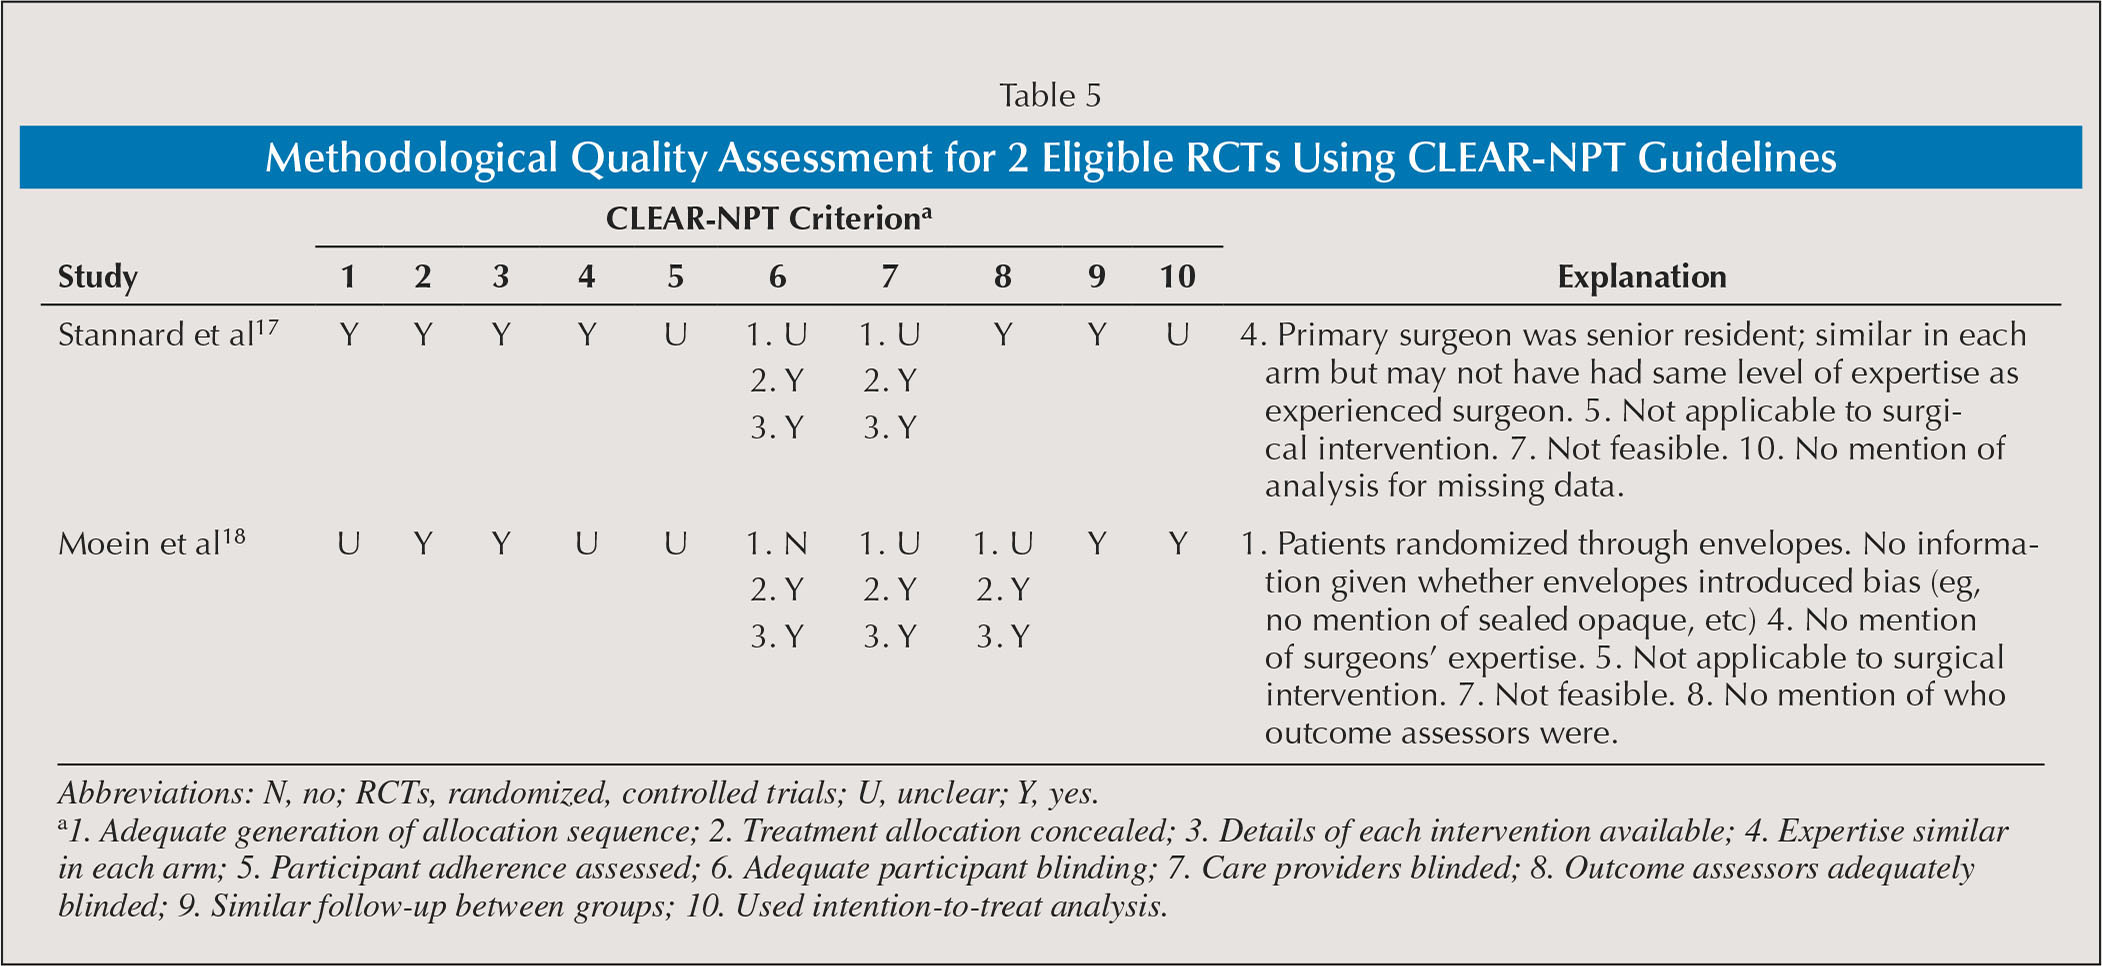 Methodological Quality Assessment for 2 Eligible RCTs Using CLEAR-NPT Guidelines